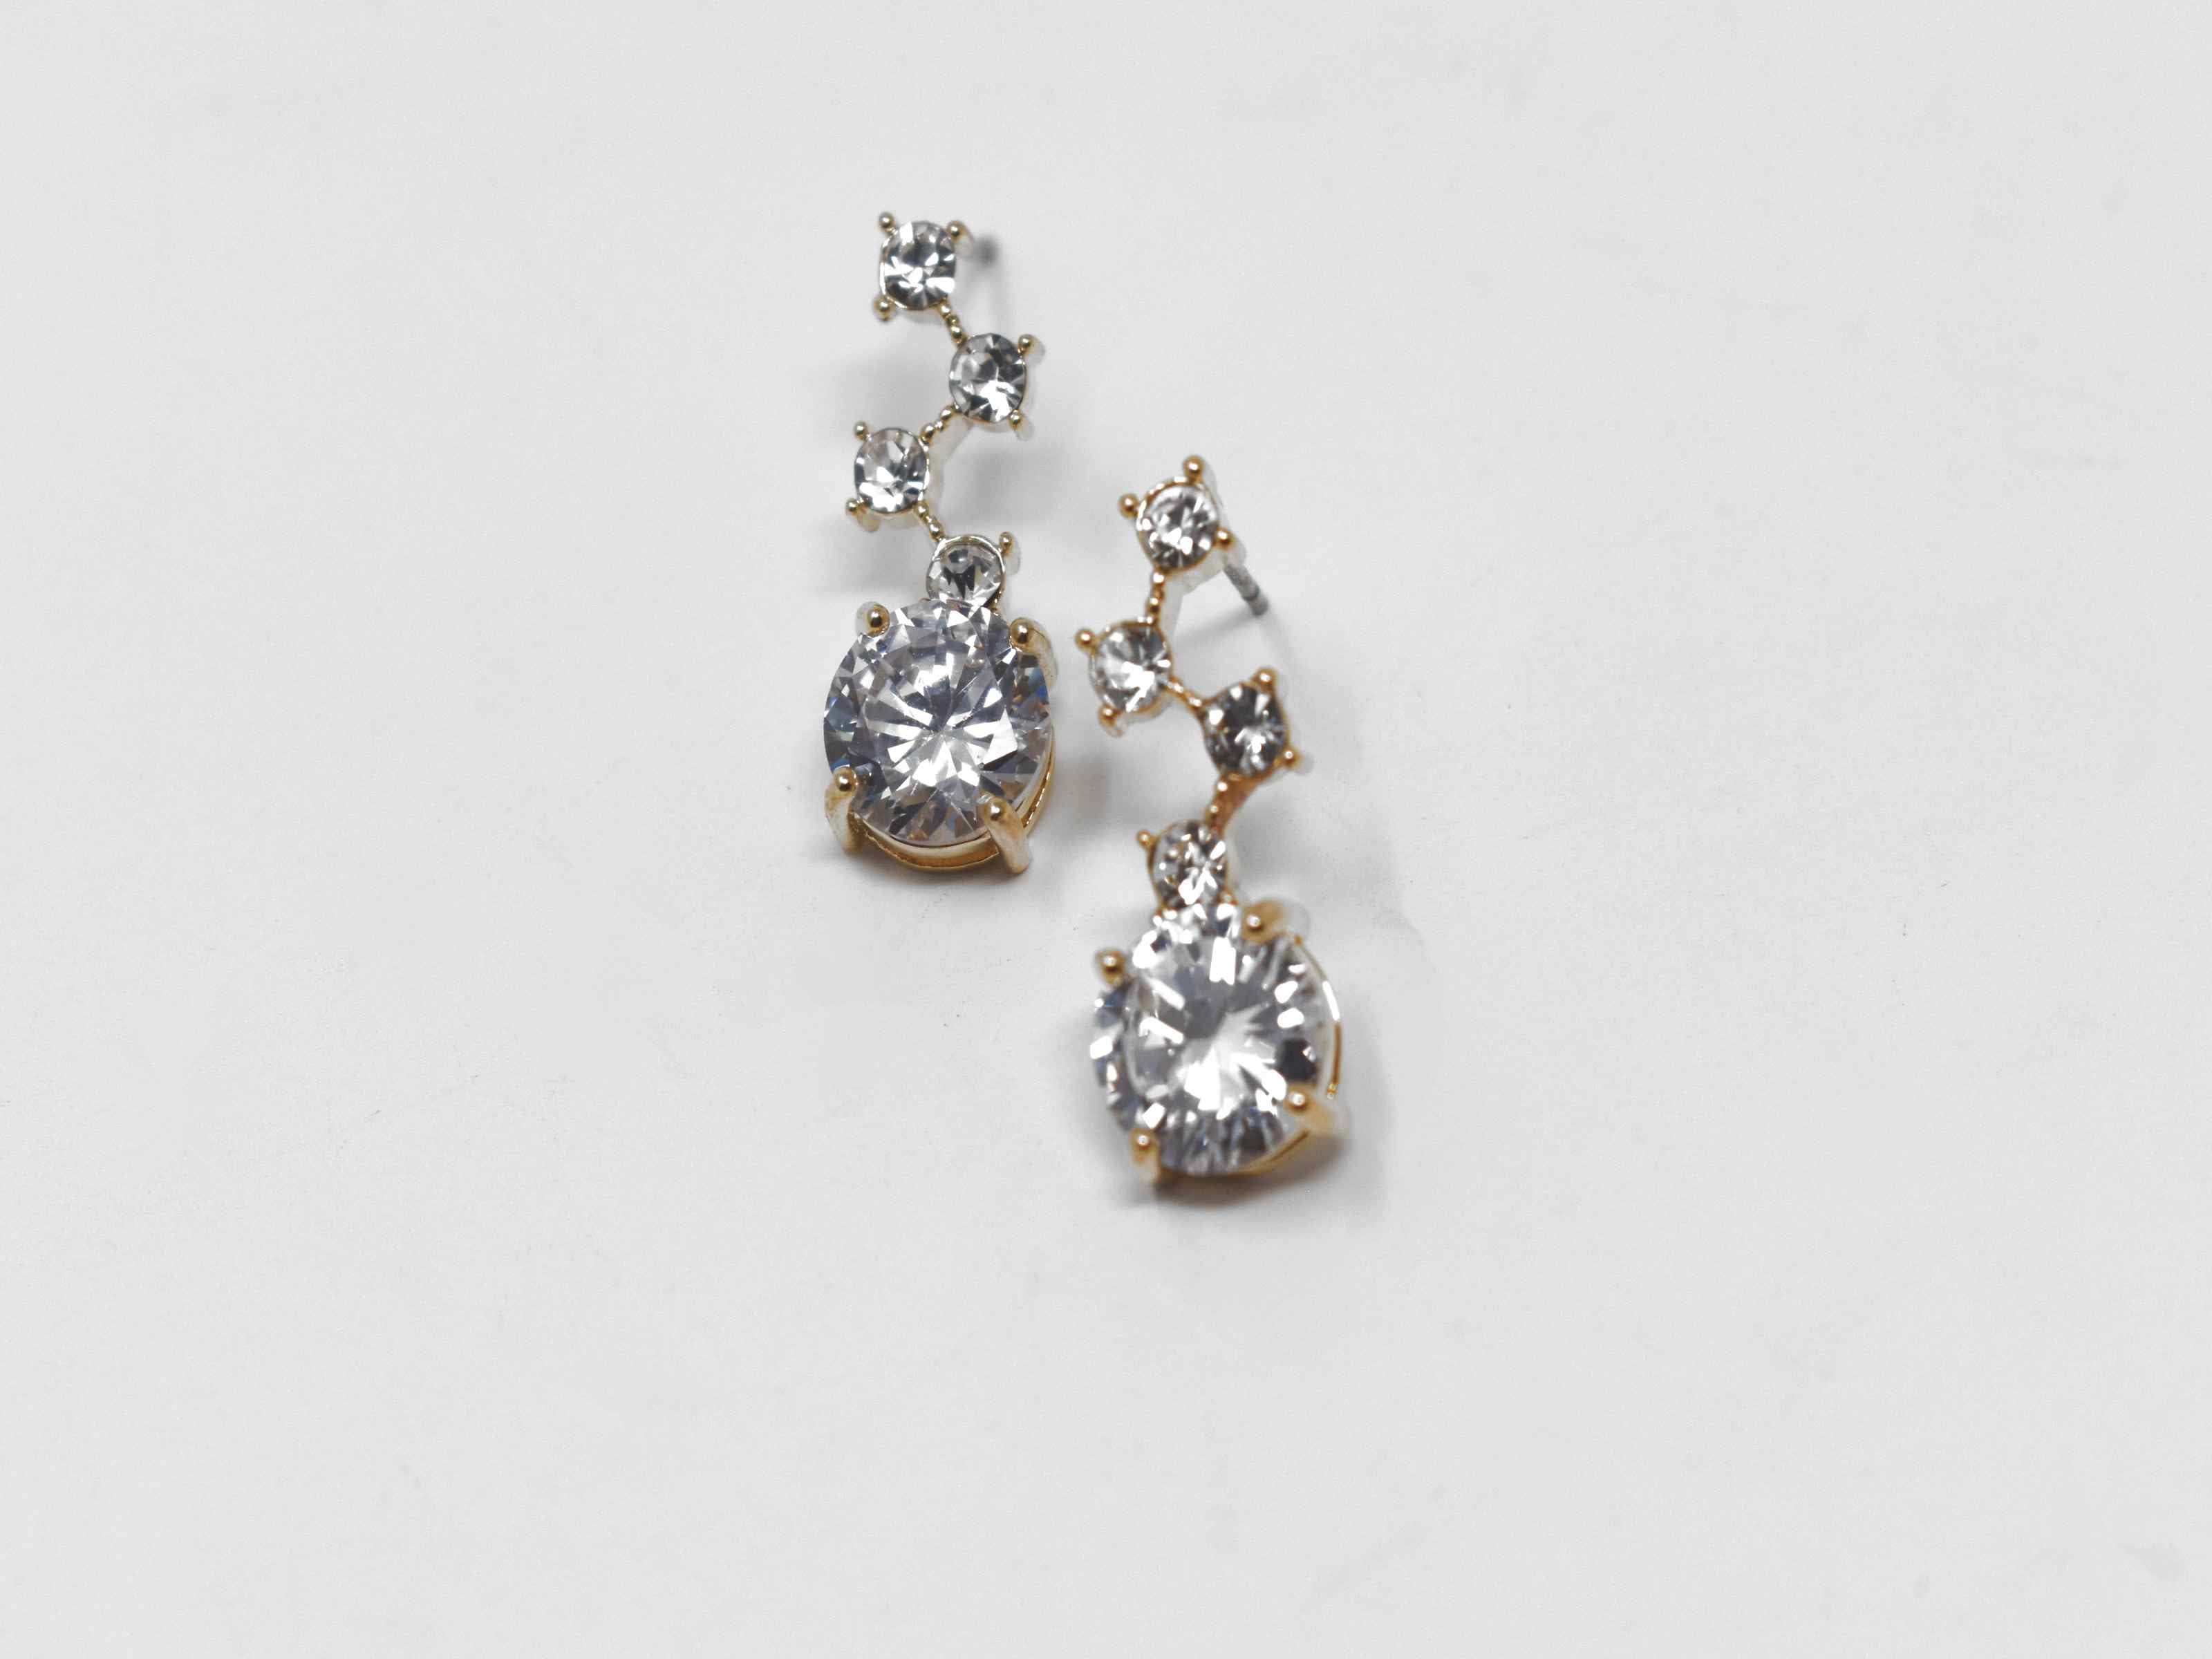 Our Flannel earrings are a must have! These gold earrings are a dangly knob connected with stones. It is 3/4 of an inch in length with a push back clasp.